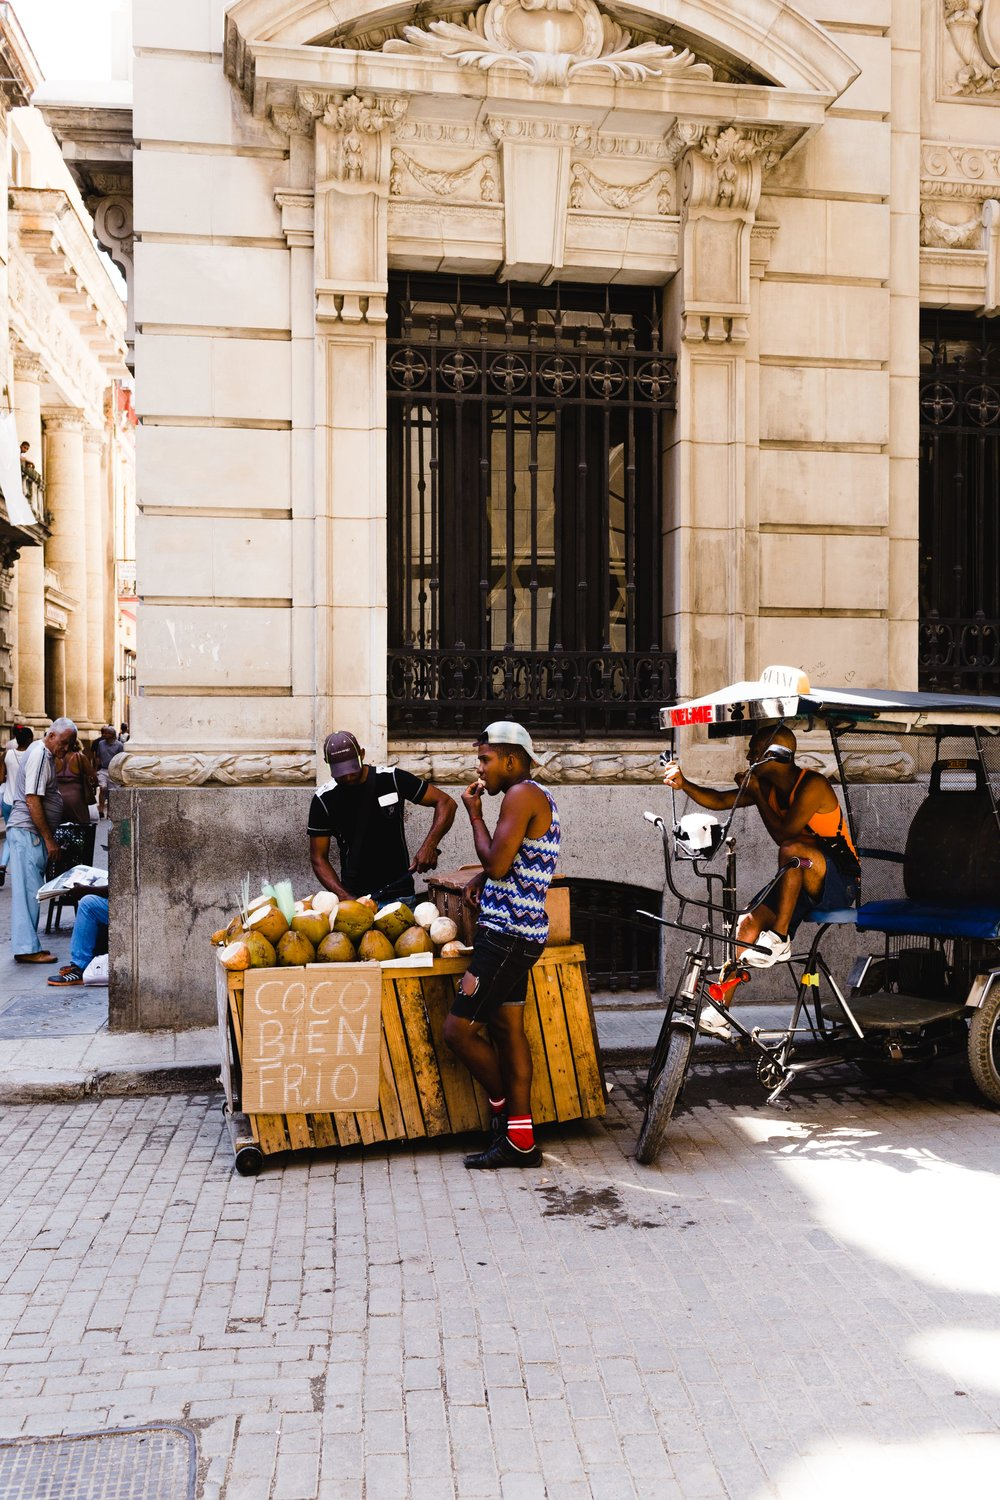 SpringMorrisPhotography_Travel_Havana_Cuba-1-7.jpg